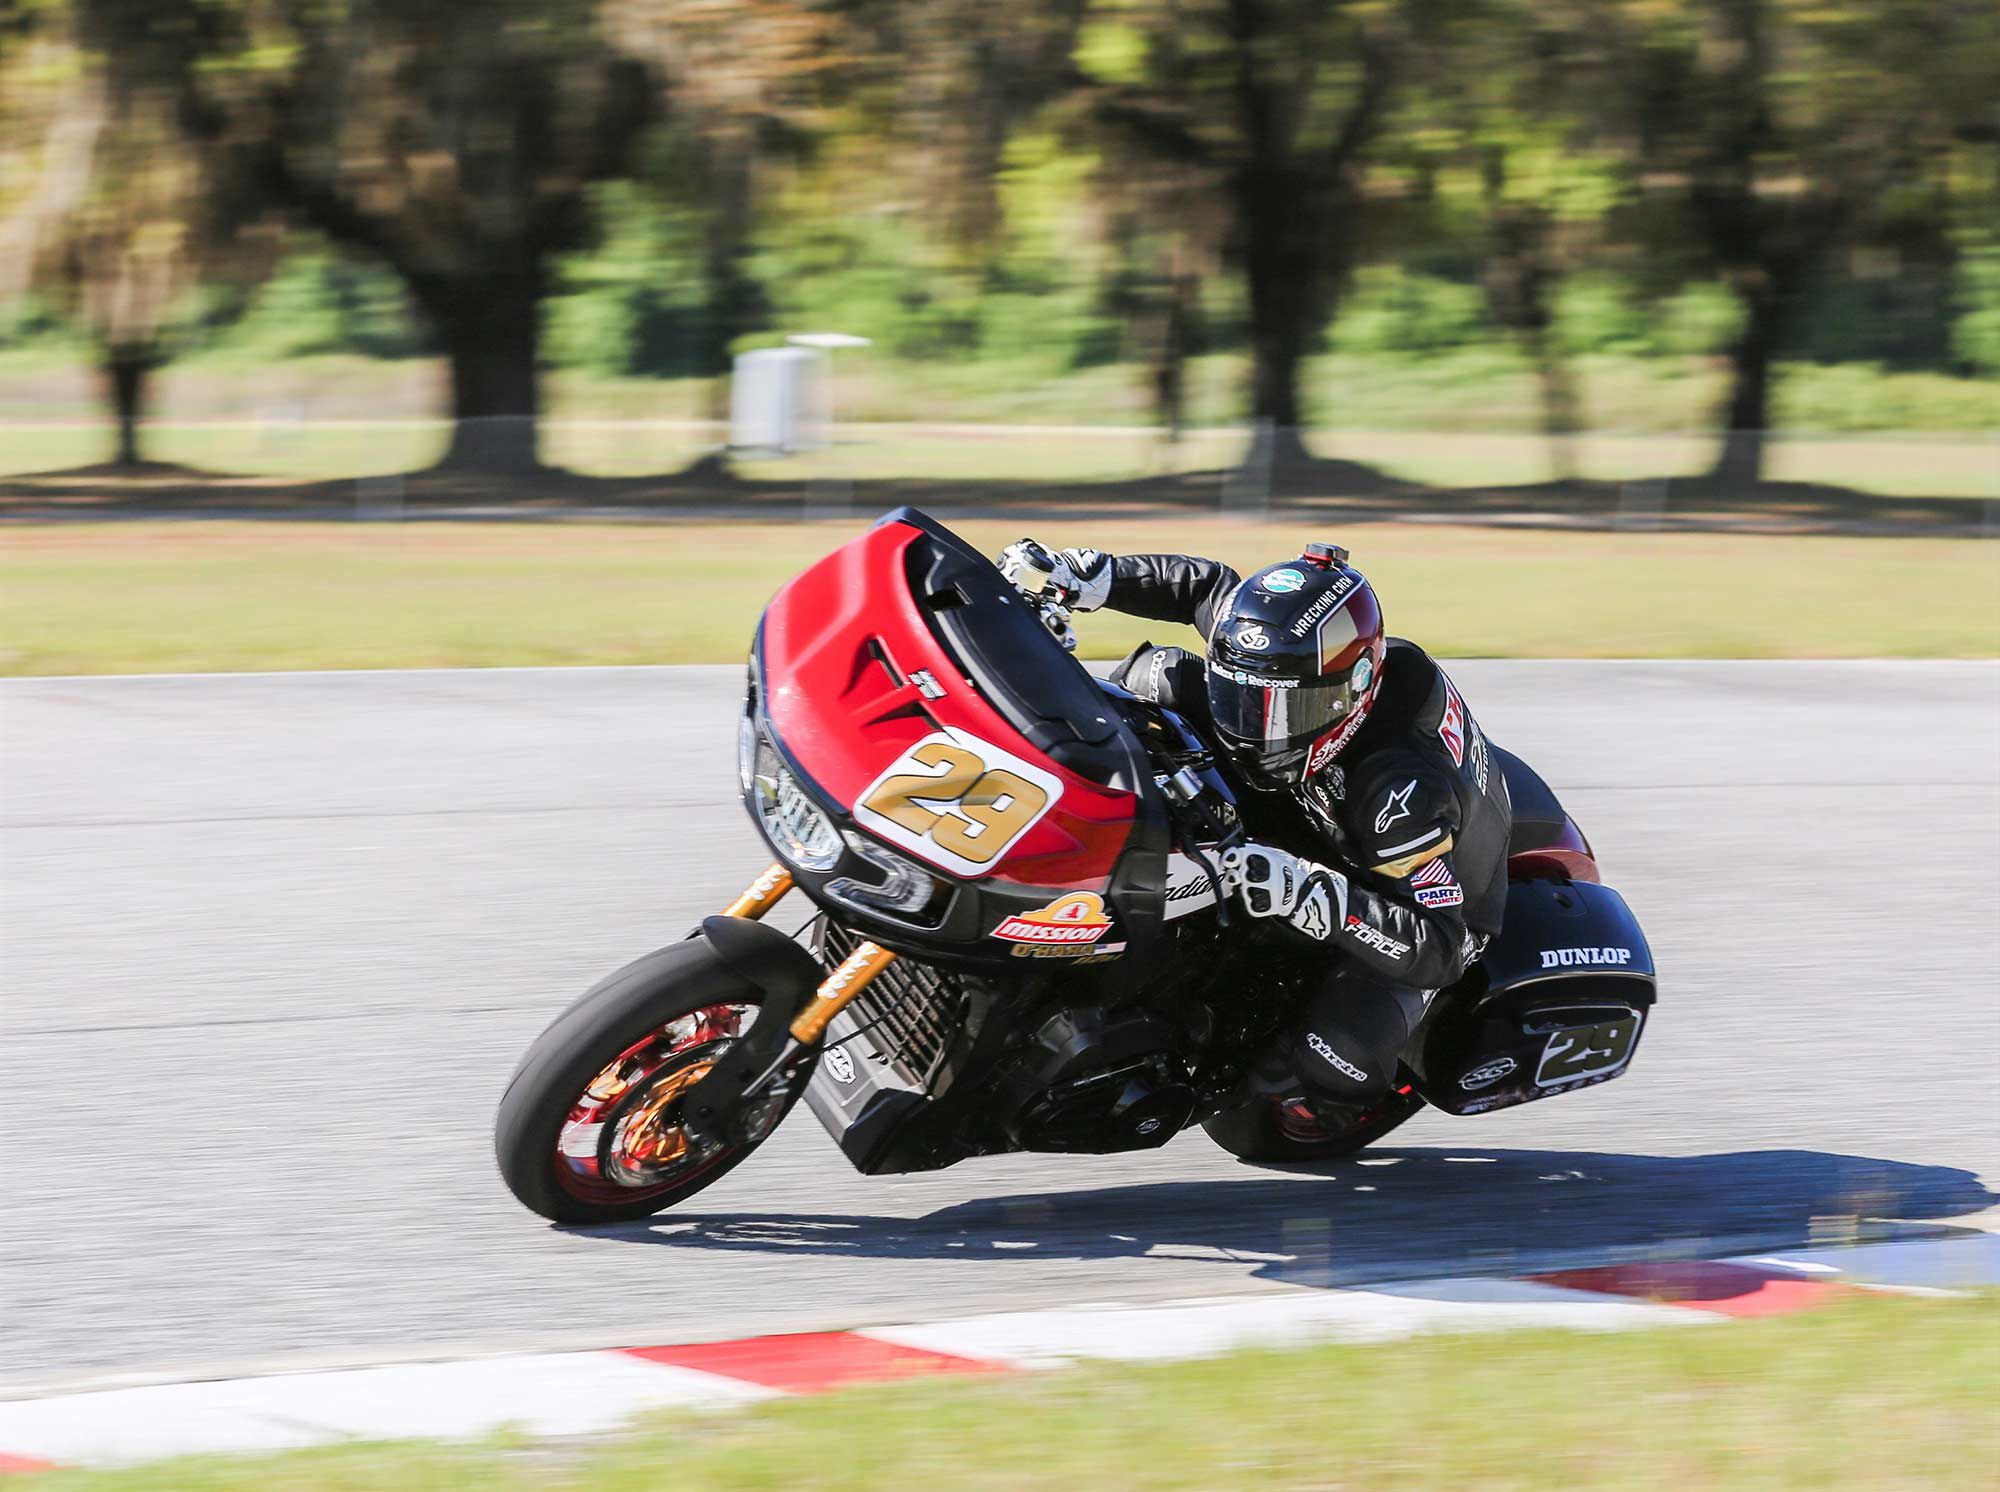 Tyler O'Hara finished second in the race as well as in the overall series points, mounted on an S&S/Indian Motorcycle Challenger.